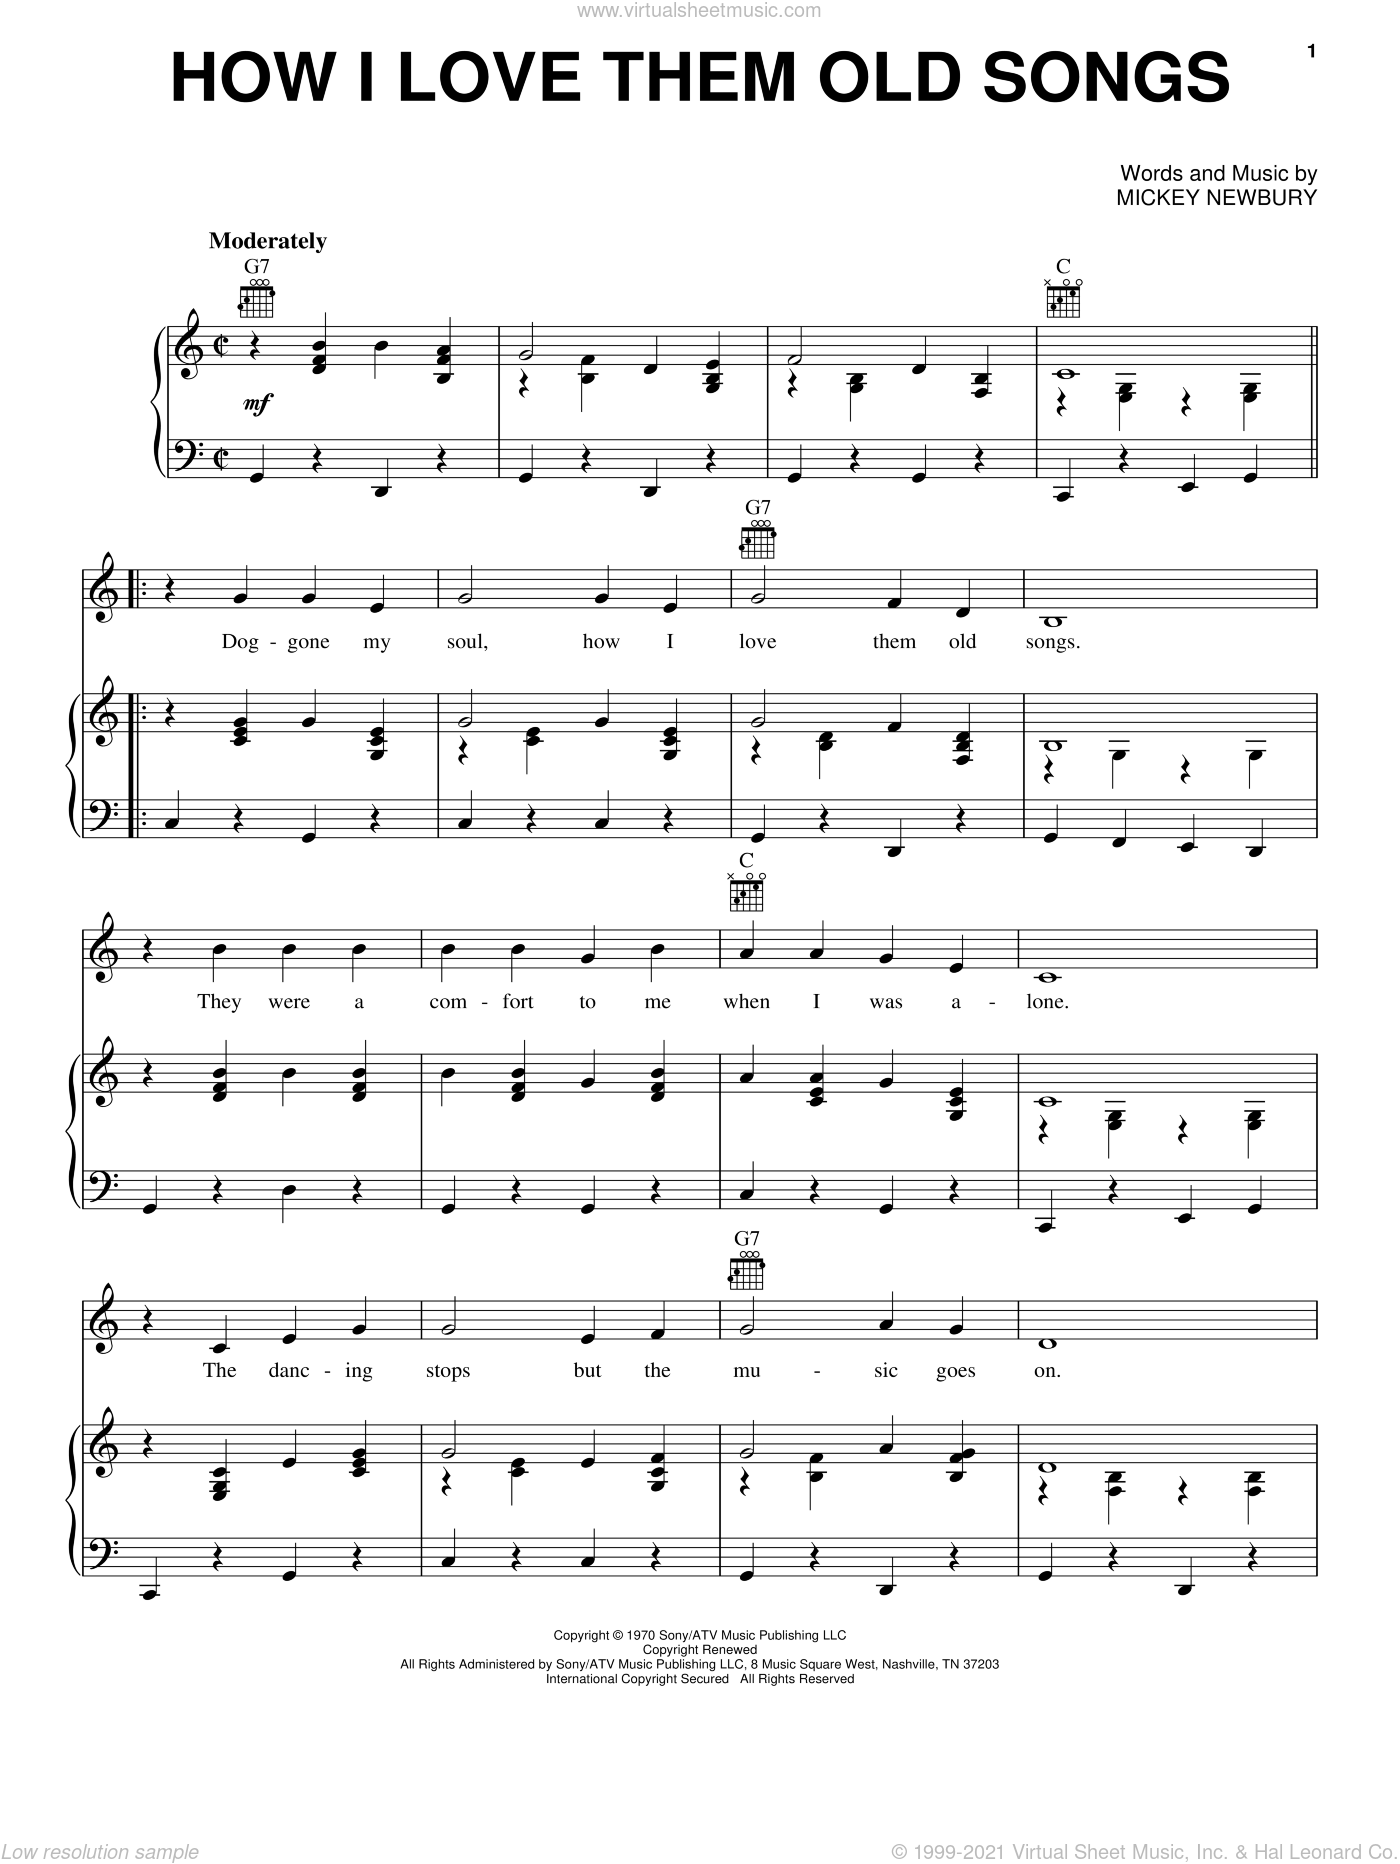 How I Love Them Old Songs sheet music for voice, piano or guitar by Mickey Newbury, intermediate skill level